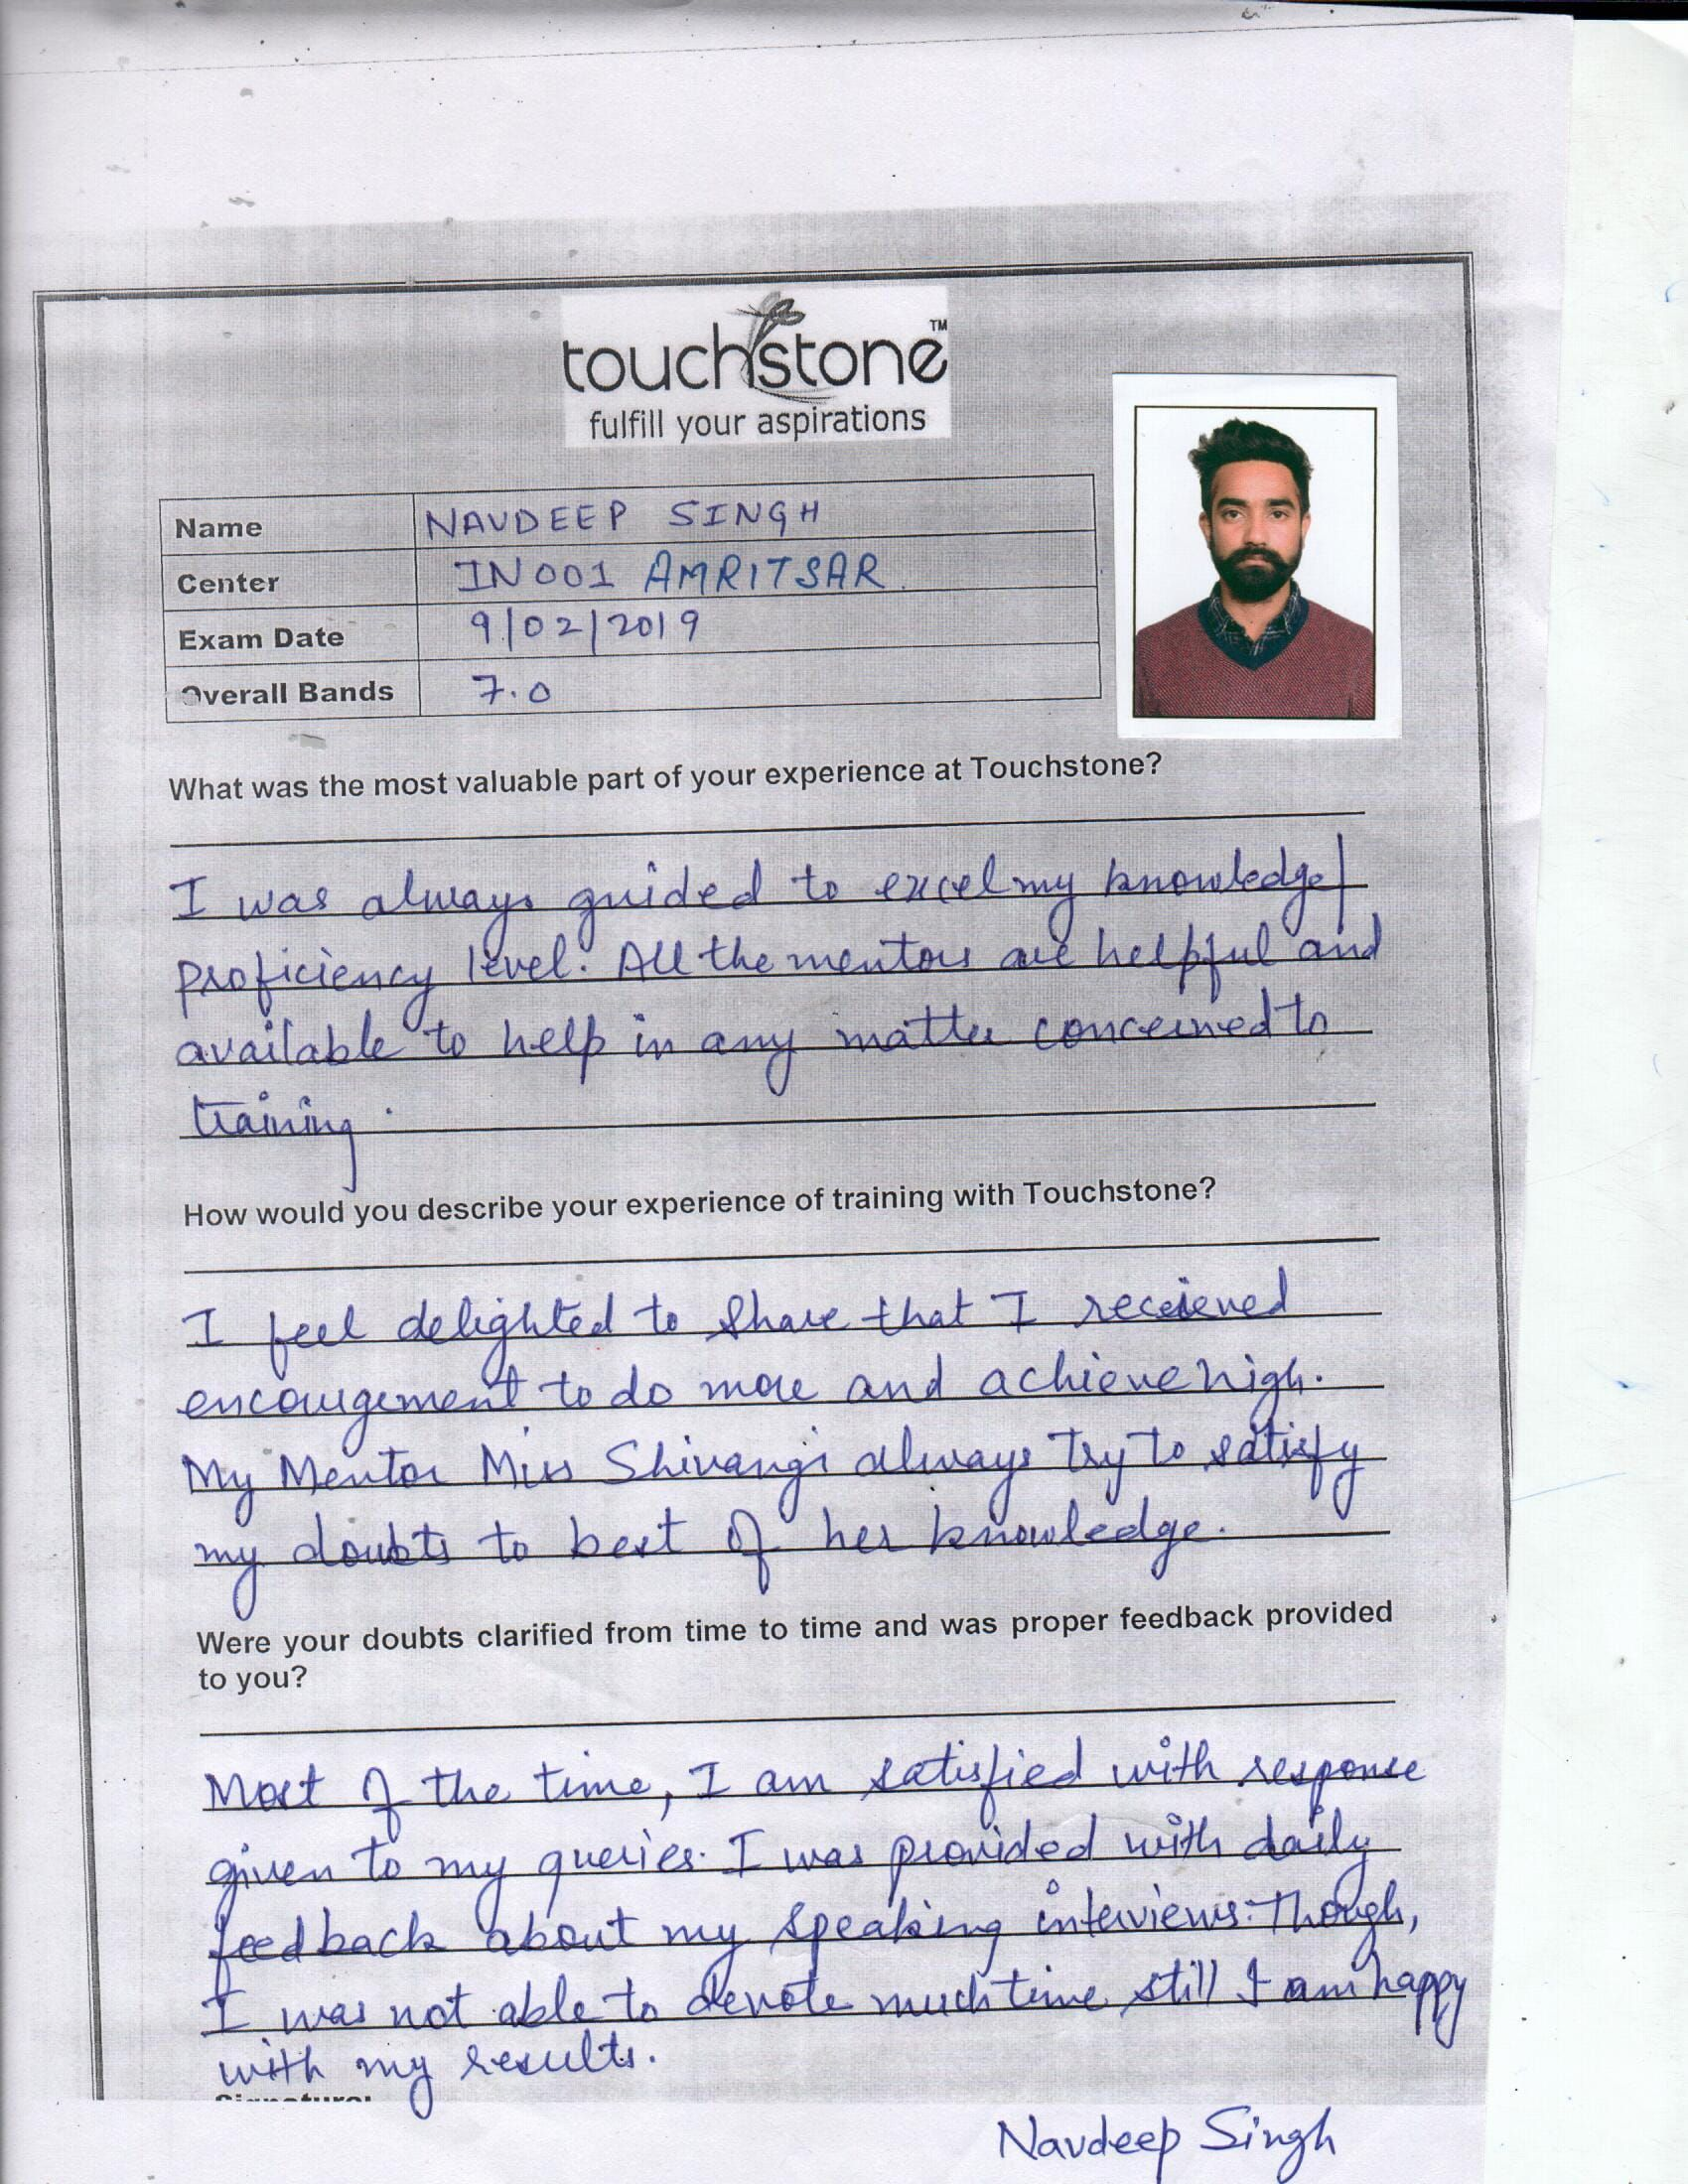 After preparing for IELTS from Touchstone Edu Amritsar